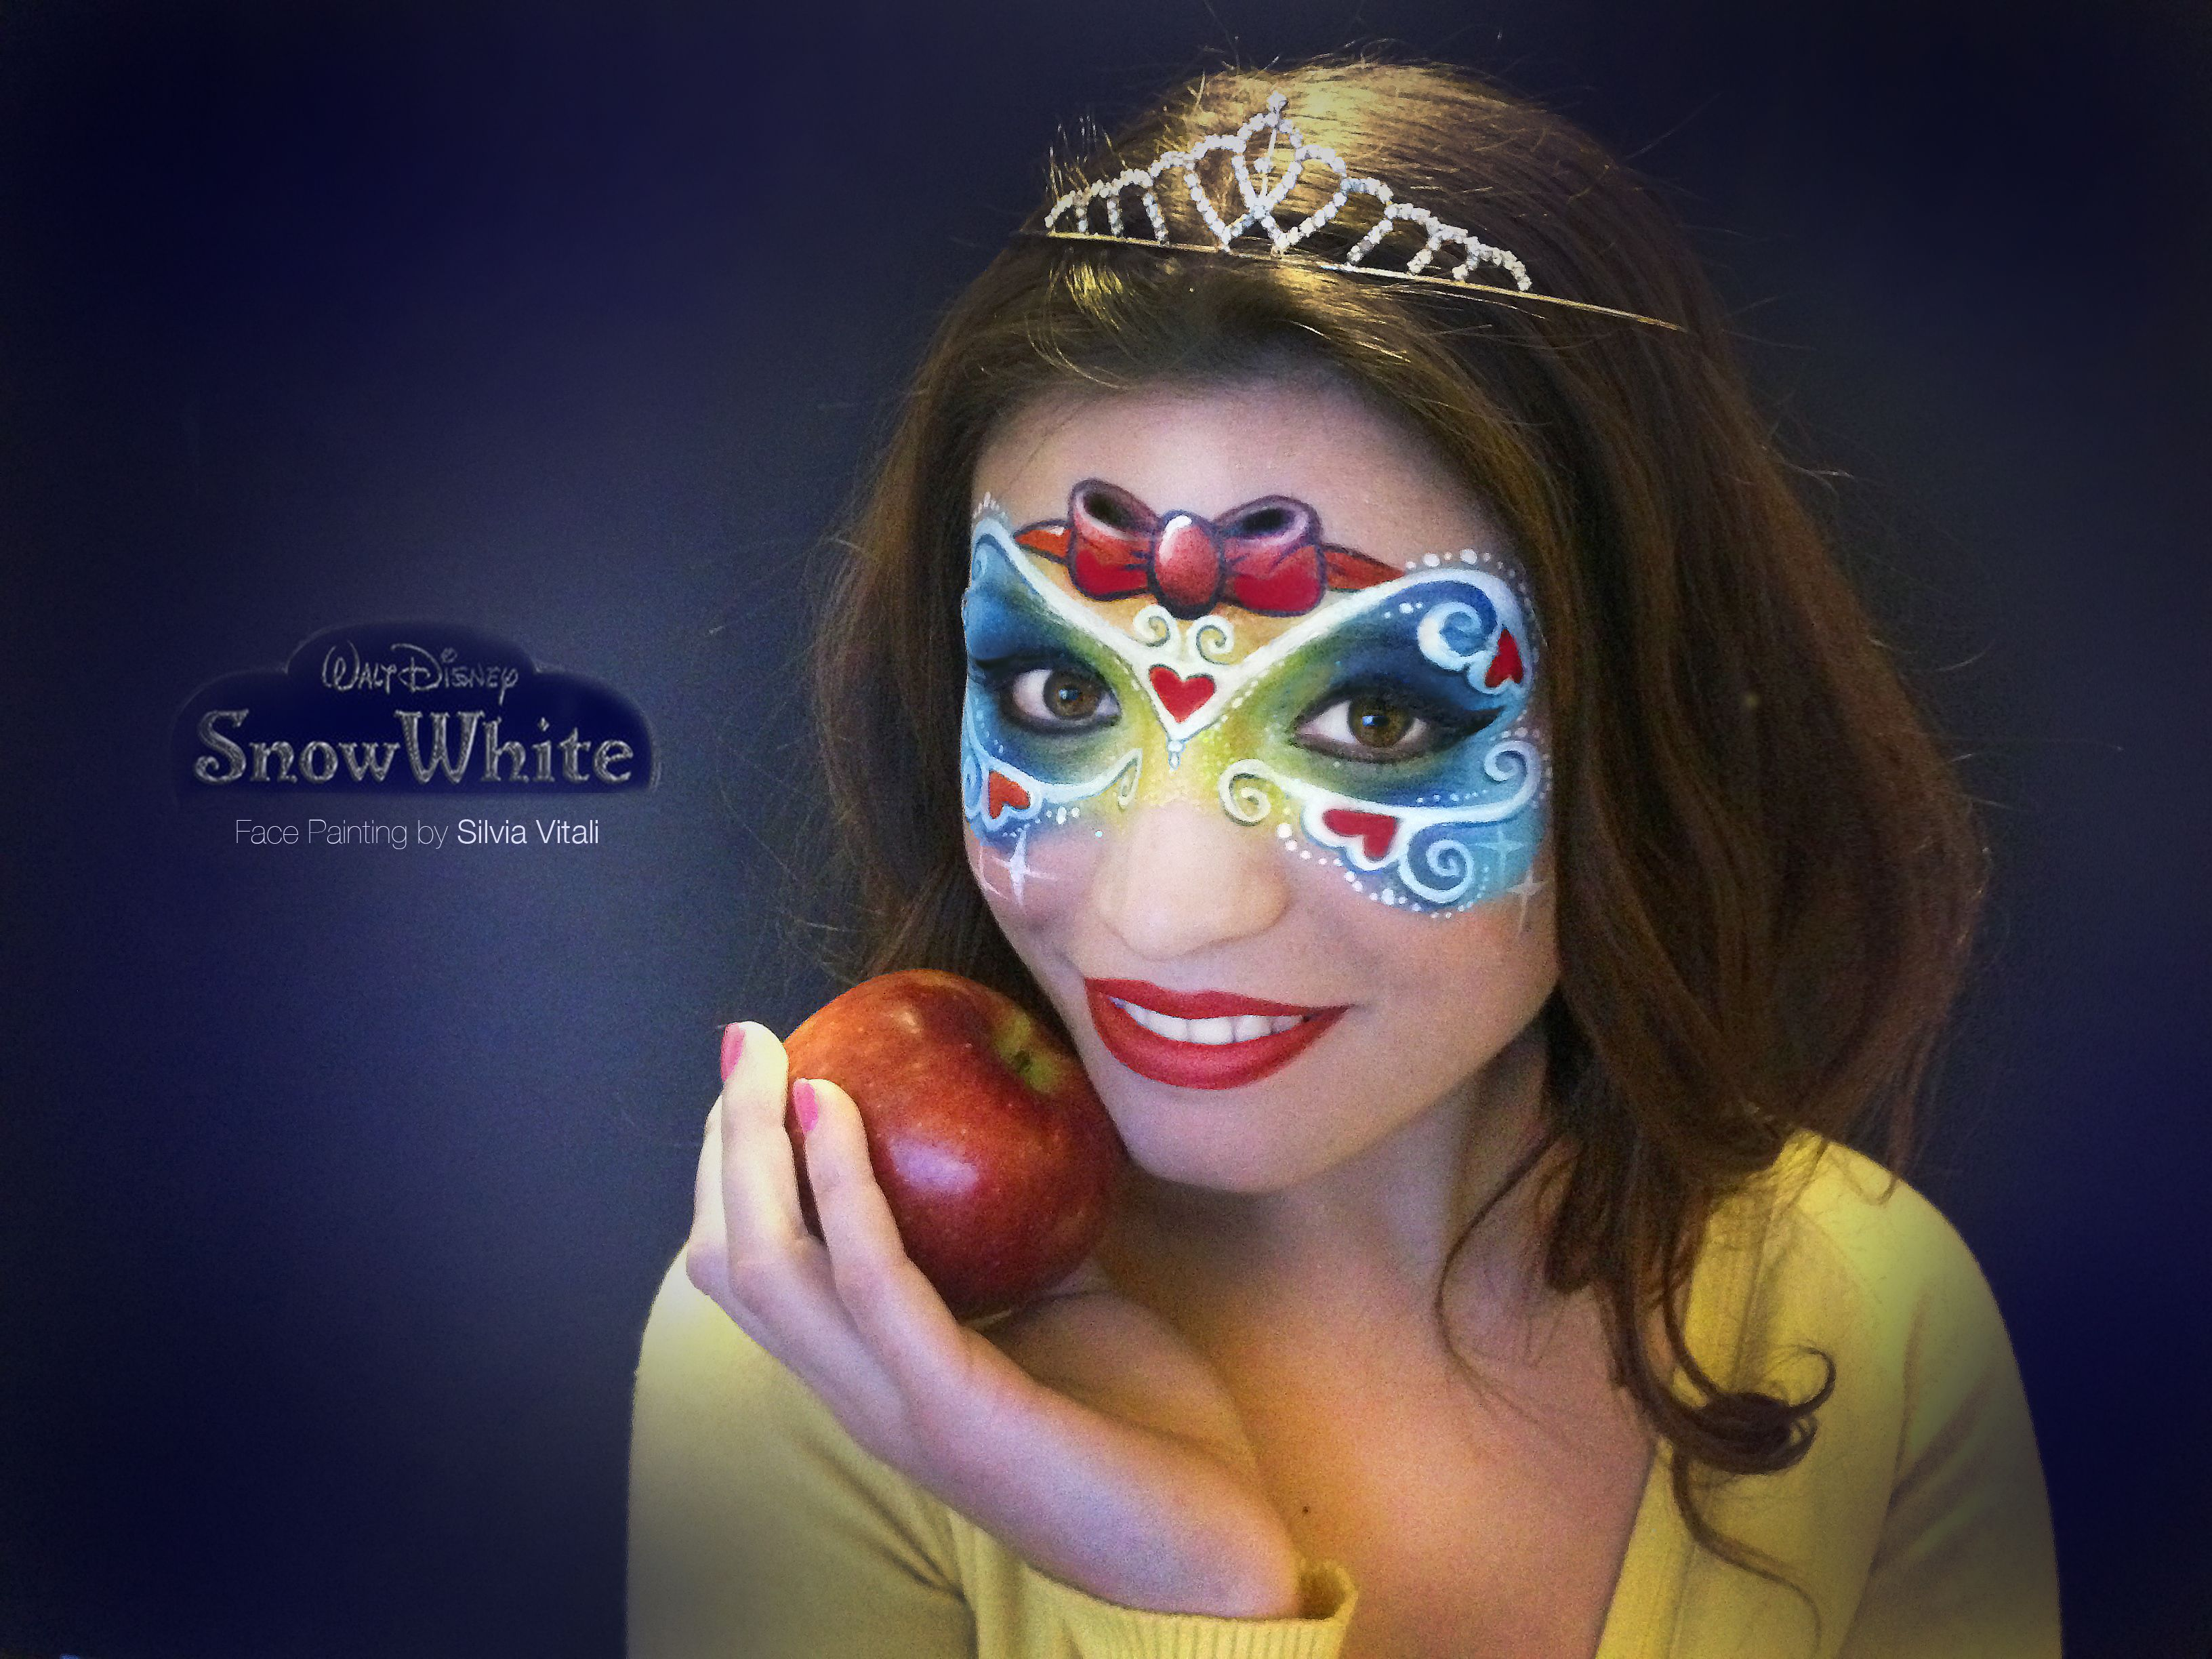 Snow White Biancaneve Face Painting By Silvia Vitali